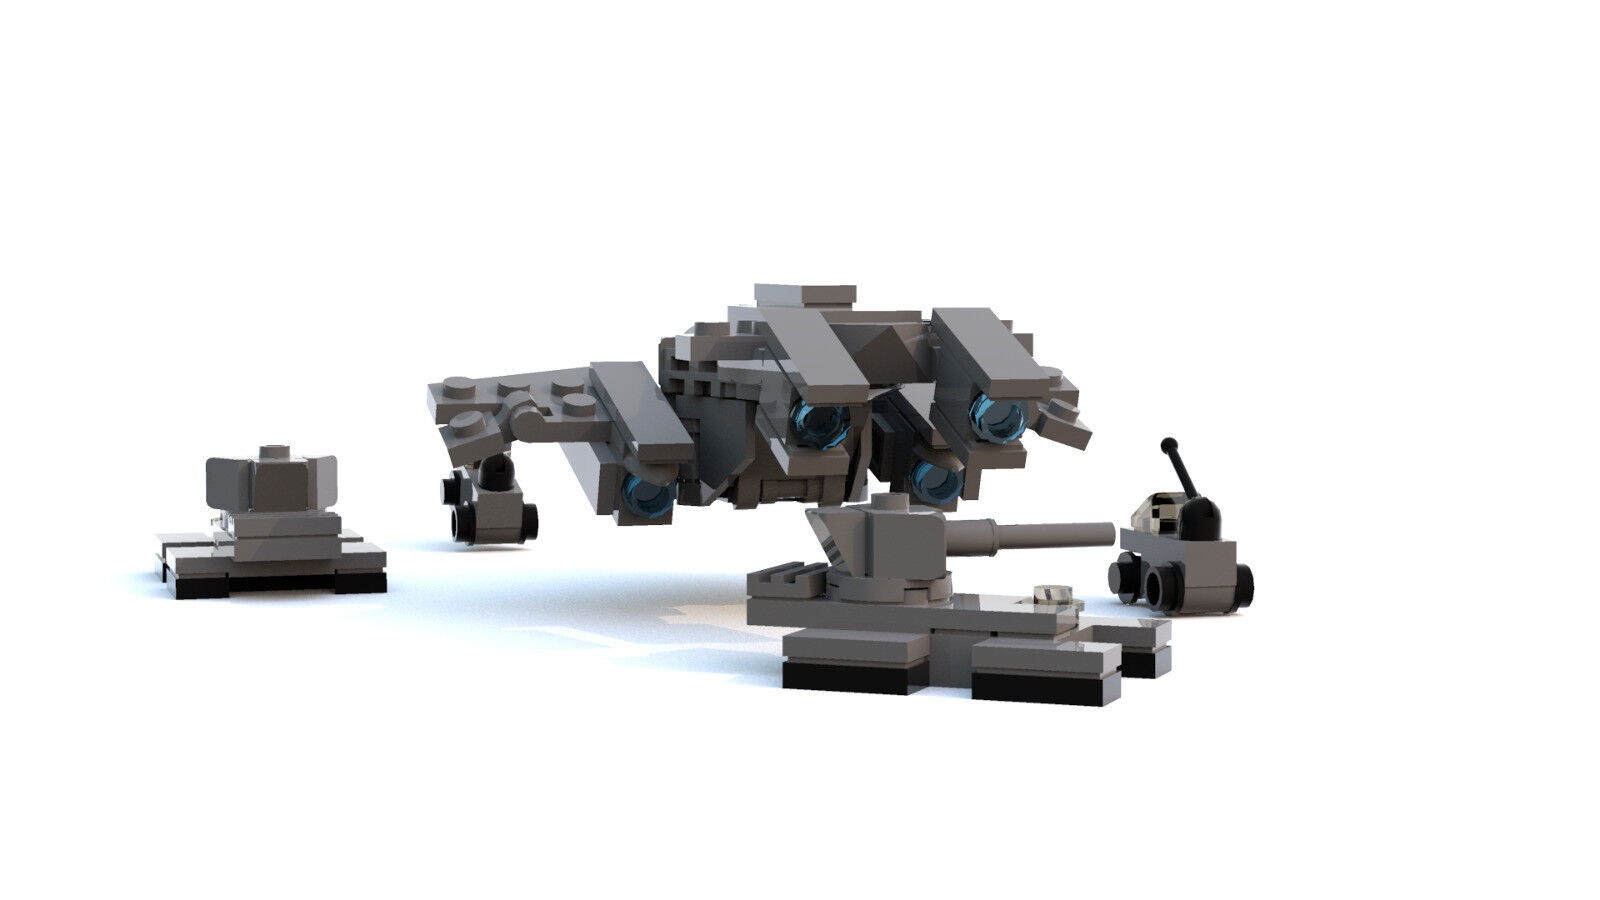 lego halo vehicles instructions